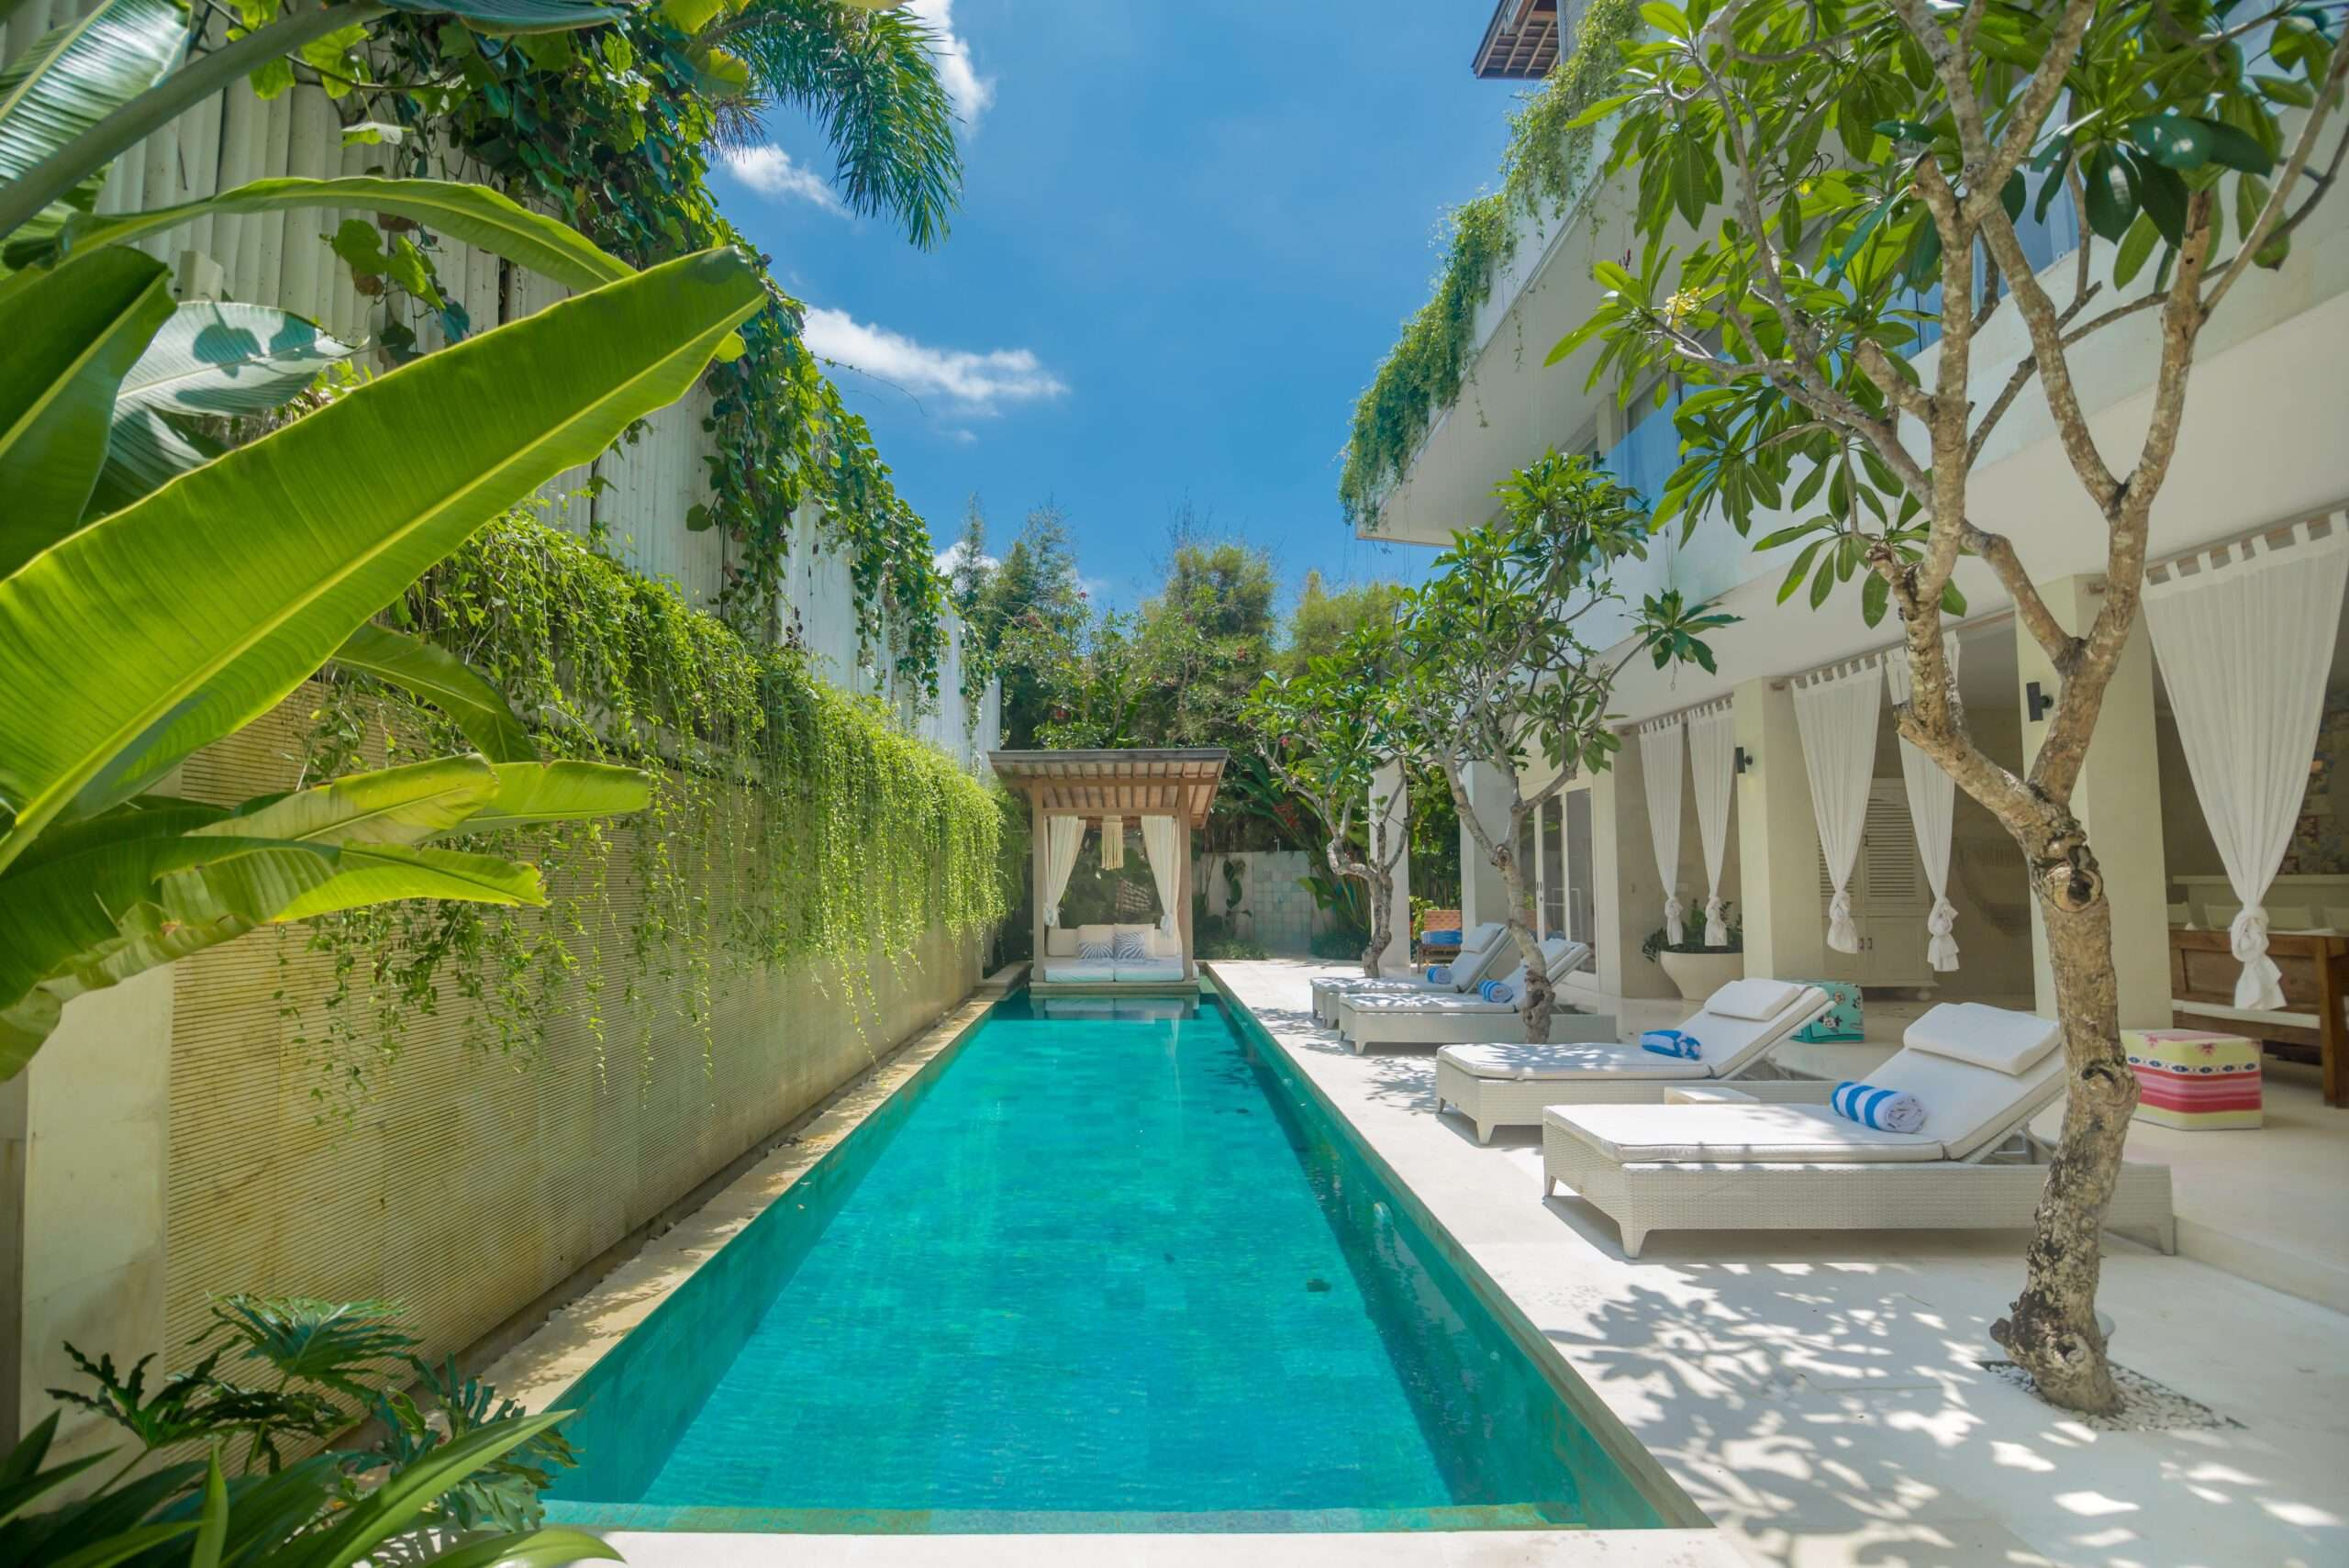 Swimming pool and green lush plants at Villa Savasana in Bali